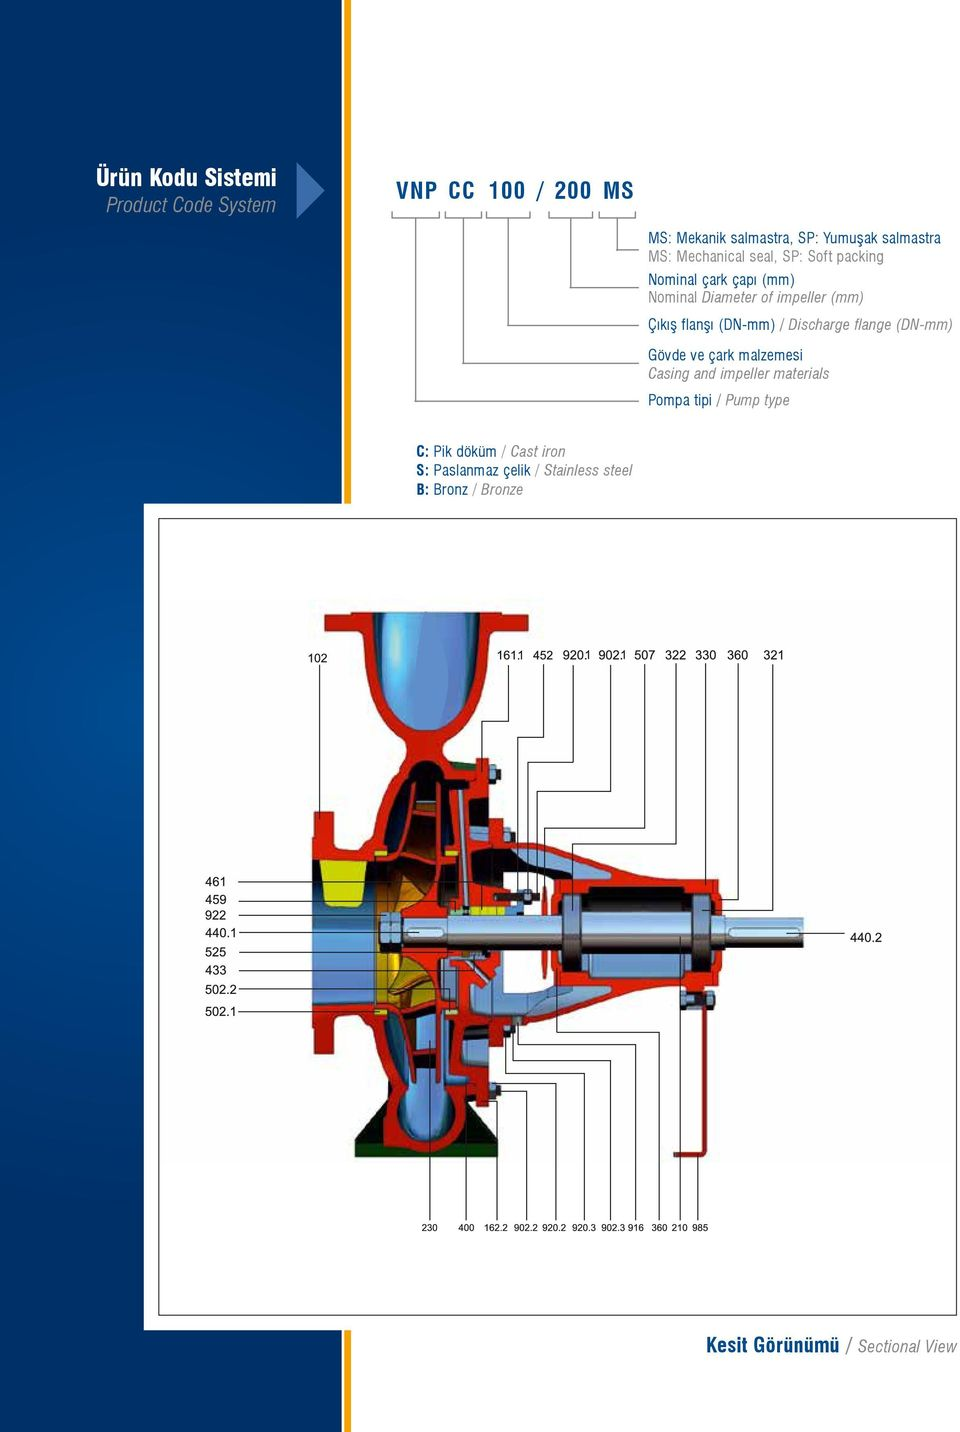 (DNmm) / Discharge flange (DNmm) Gövde ve çark malzemesi Casing and impeller materials Pompa tipi / Pump